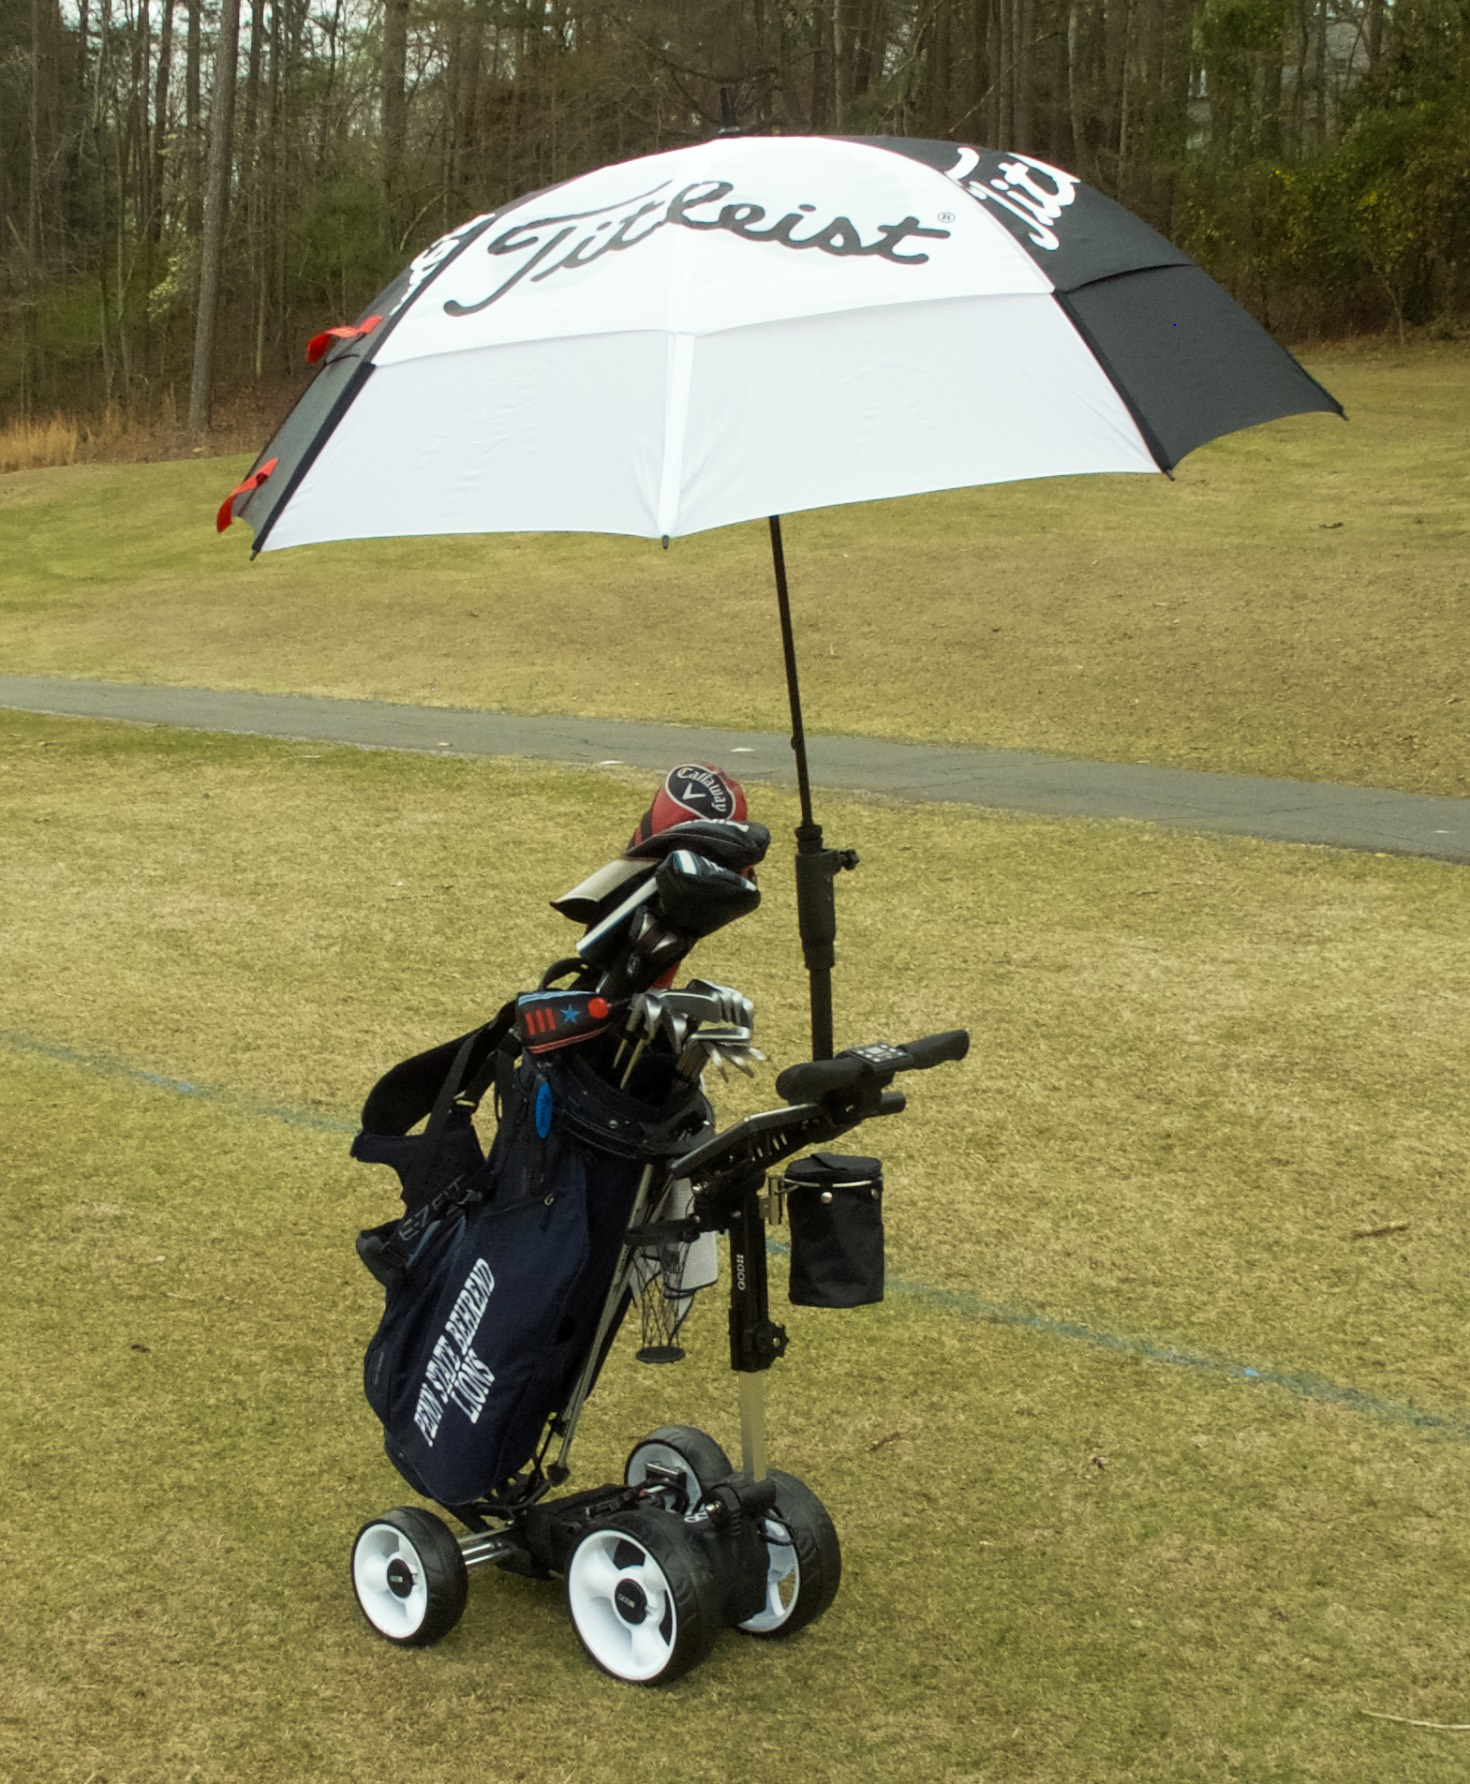 QOD Cart Umbrella